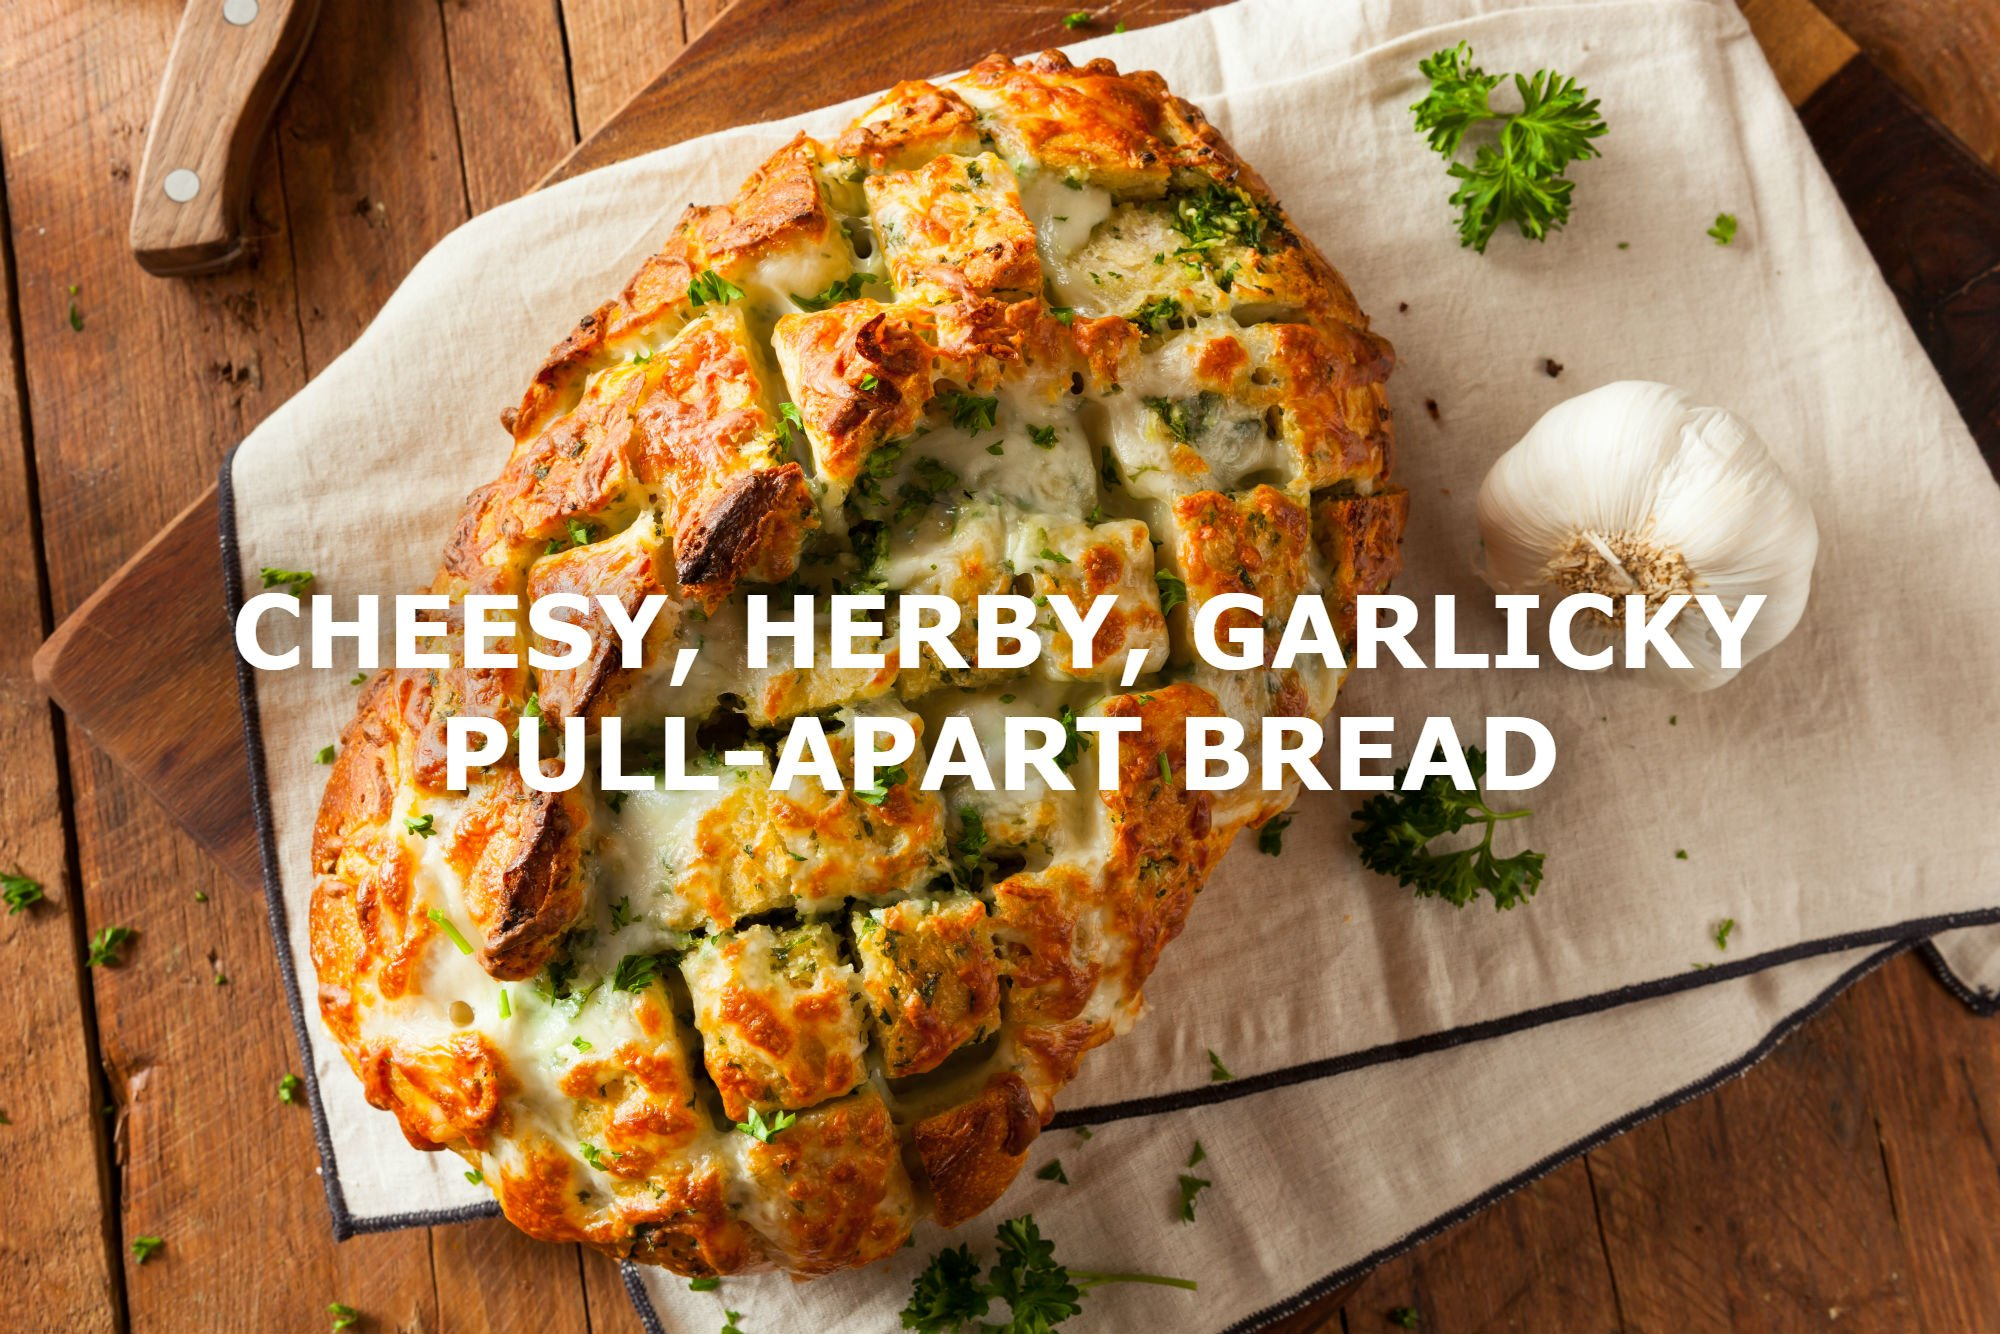 THE BREAD CENTREPIECE YOU'VE BEEN WAITING FOR